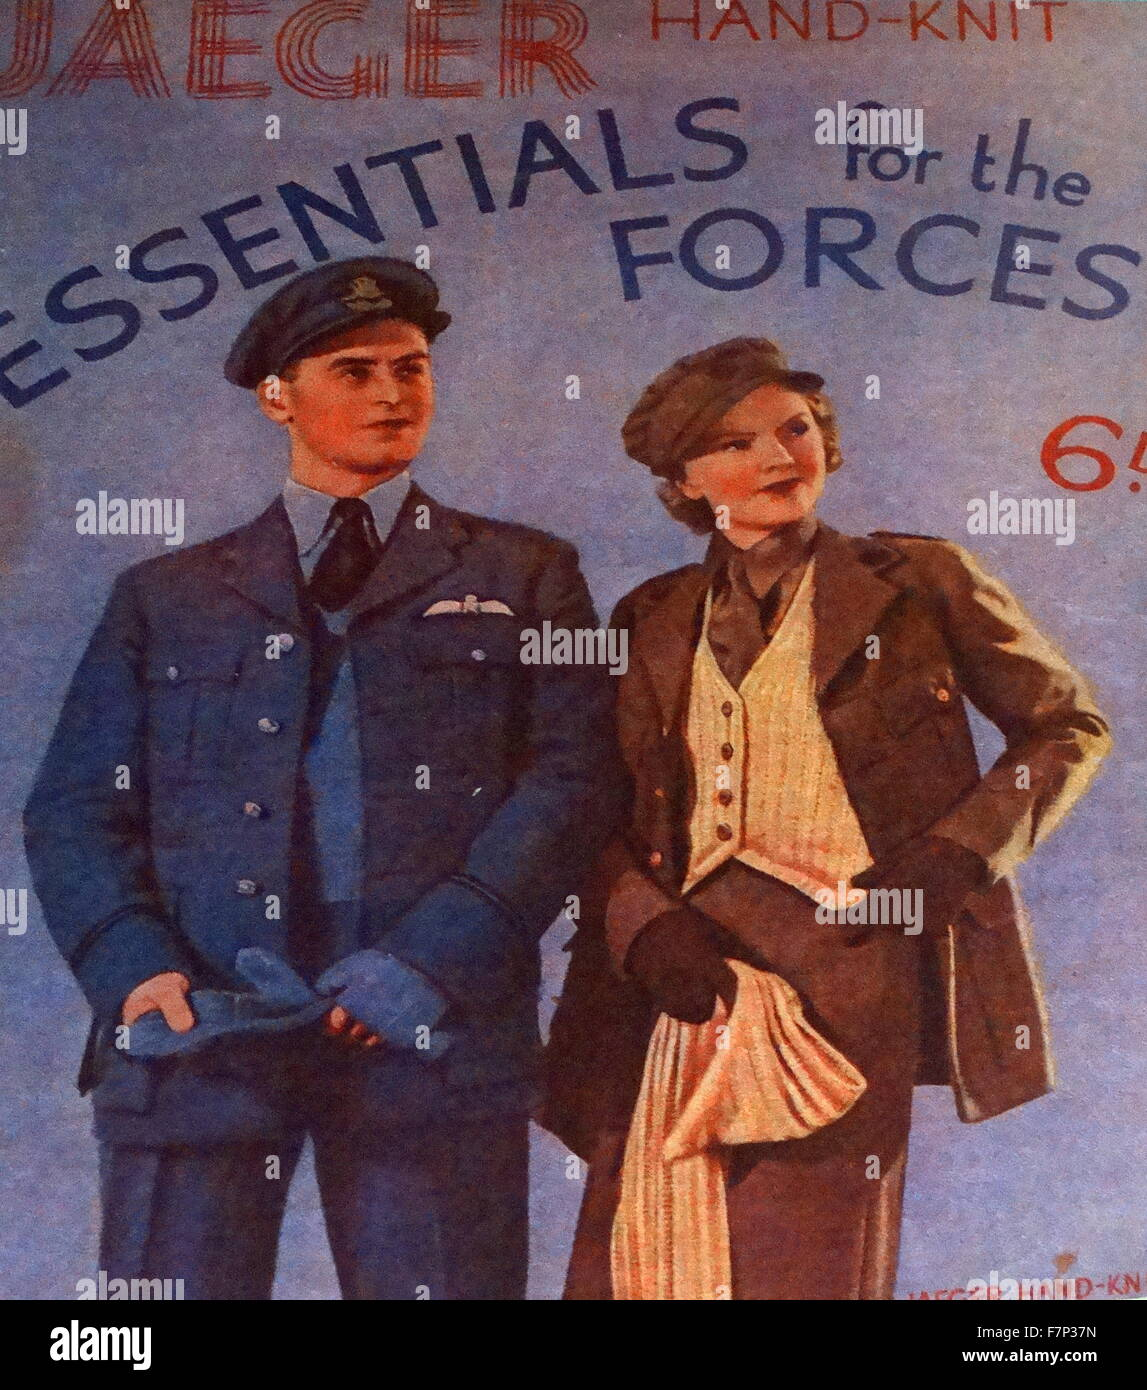 Second World War poster. Dated 1939 - Stock Image